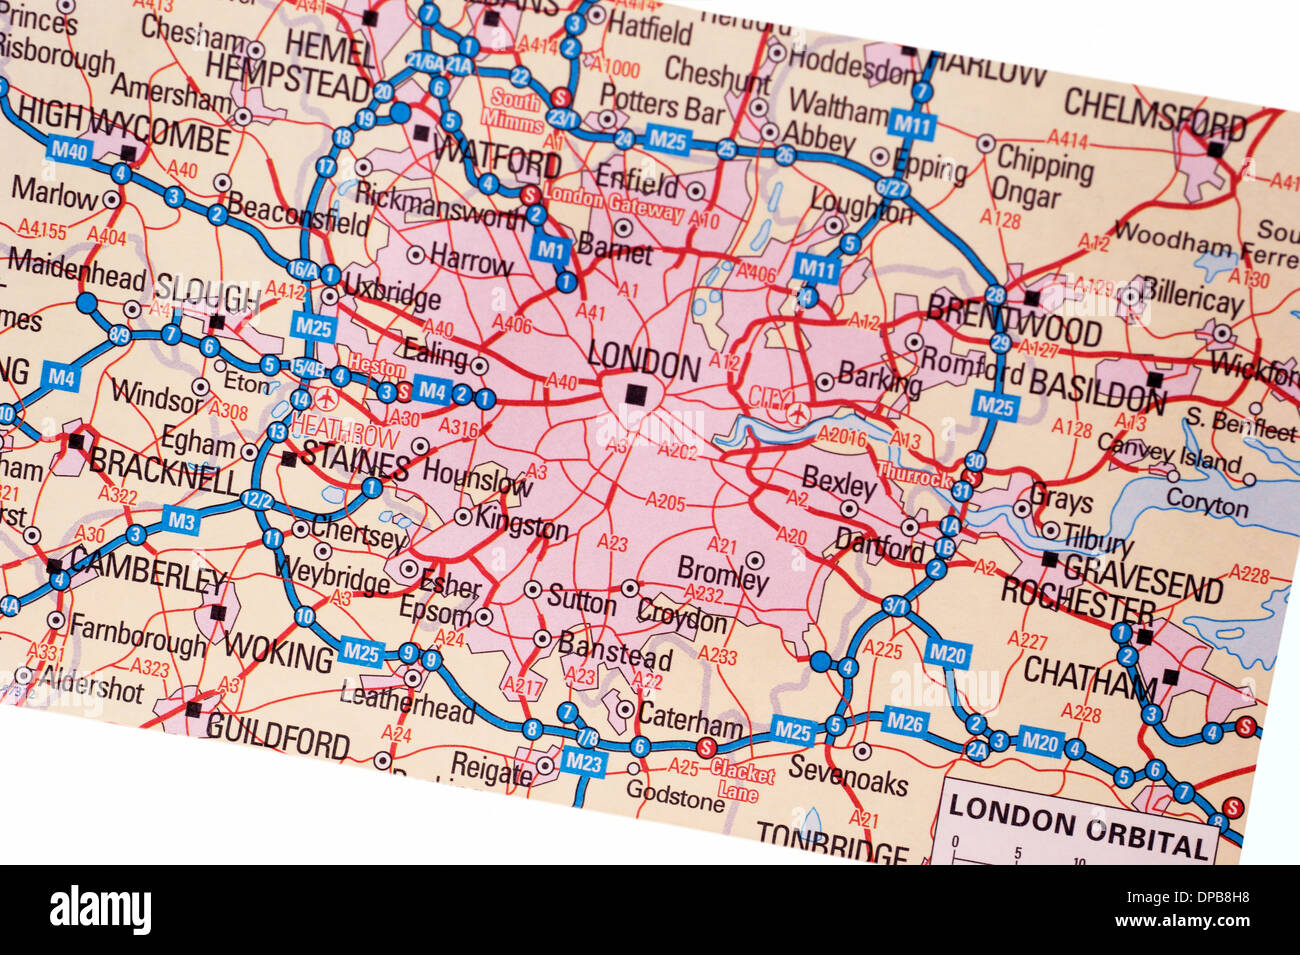 Old Fashioned Road Maps